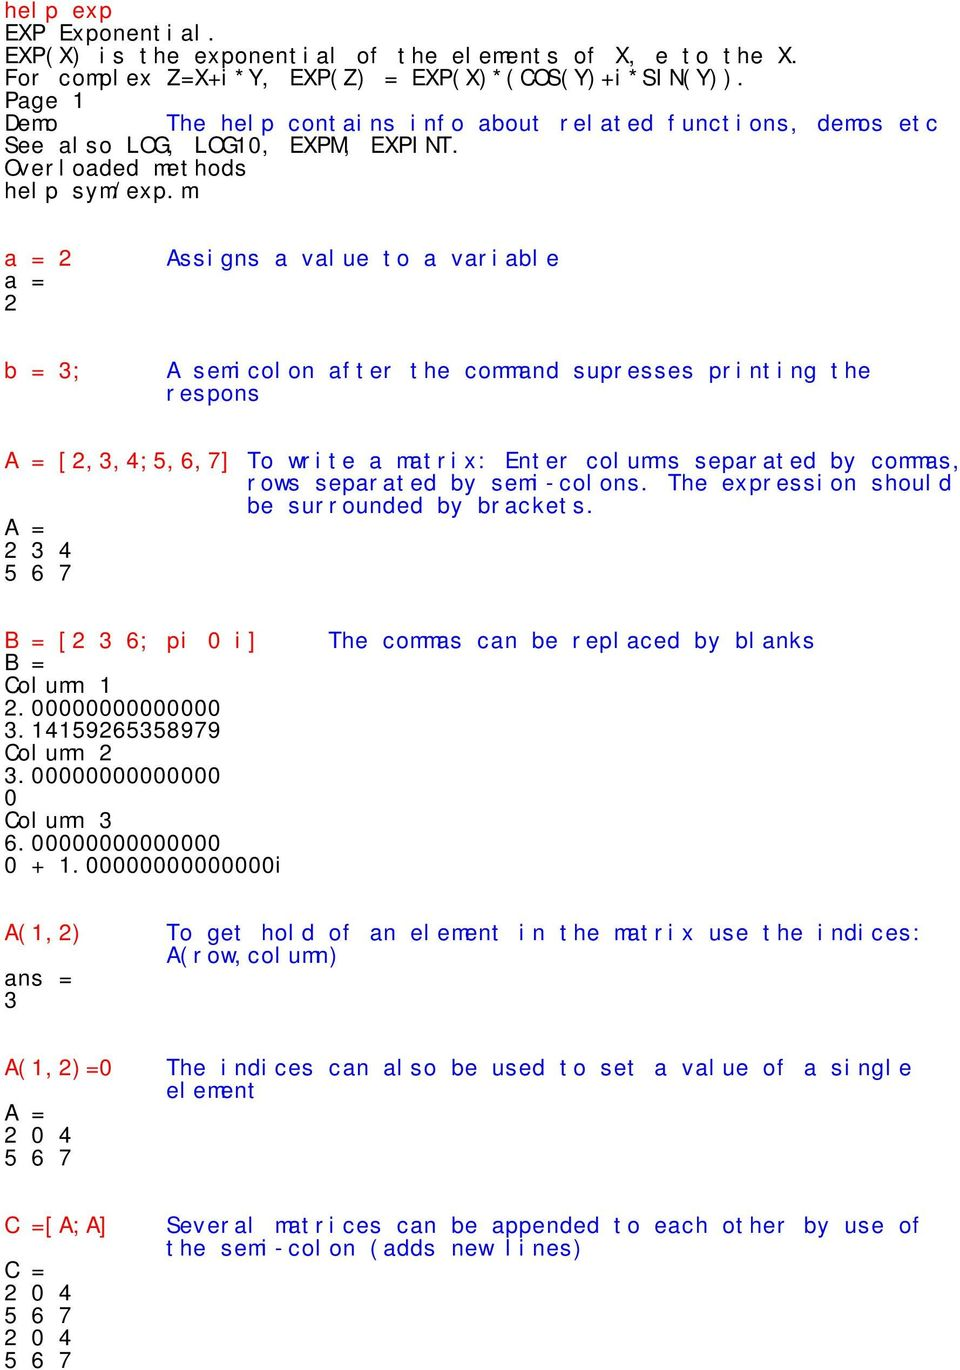 m a = 2 a = 2 Assigns a value to a variable b = 3; A semicolon after the command supresses printing the respons [2,3,4;5,6,7] To write a matrix: Enter columns separated by commas, rows separated by